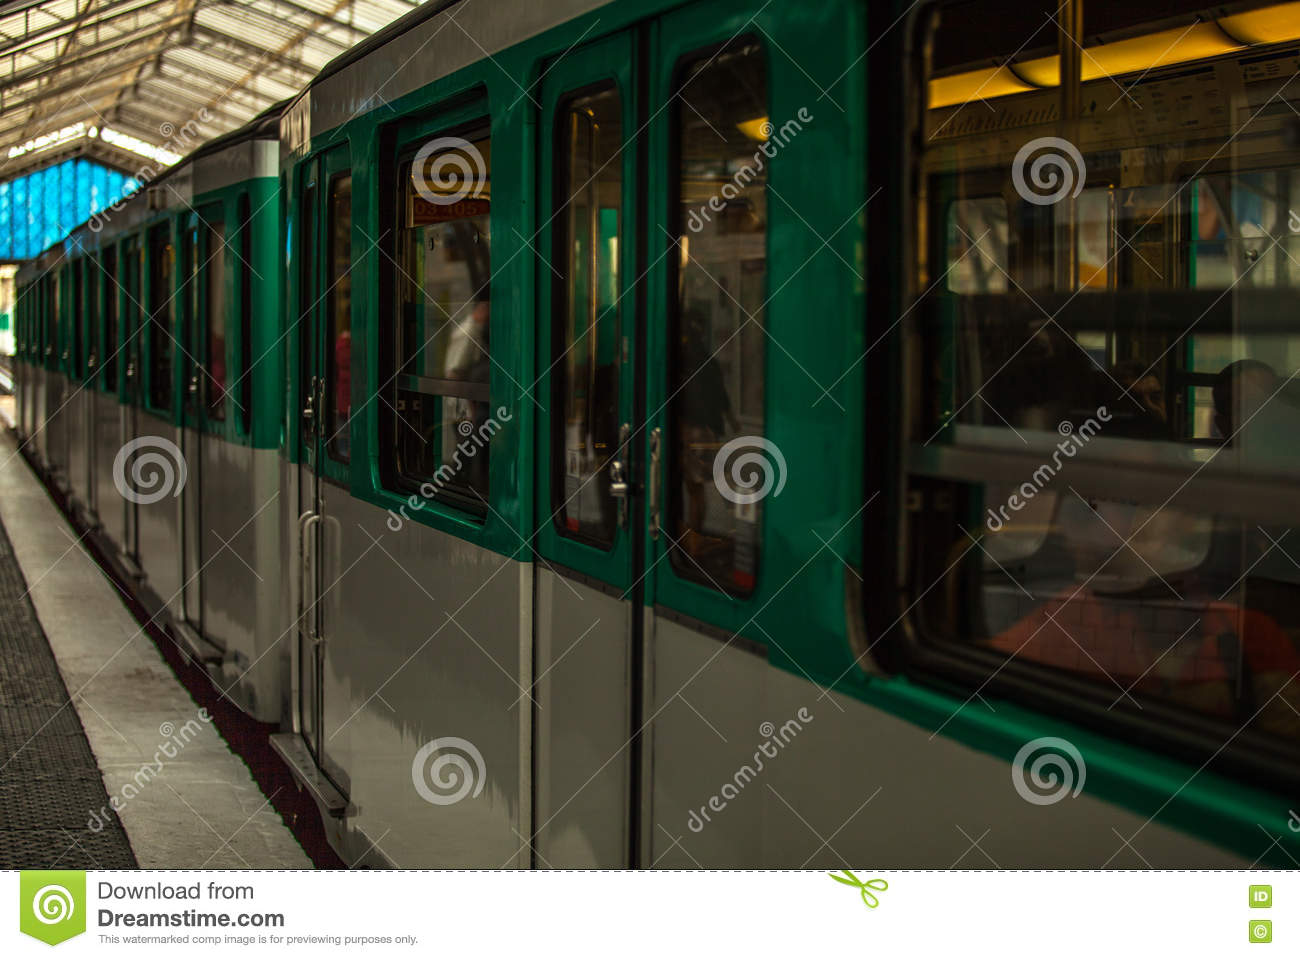 Metro Station In Paris, France. Paris Metro Is The 2nd Largest ...